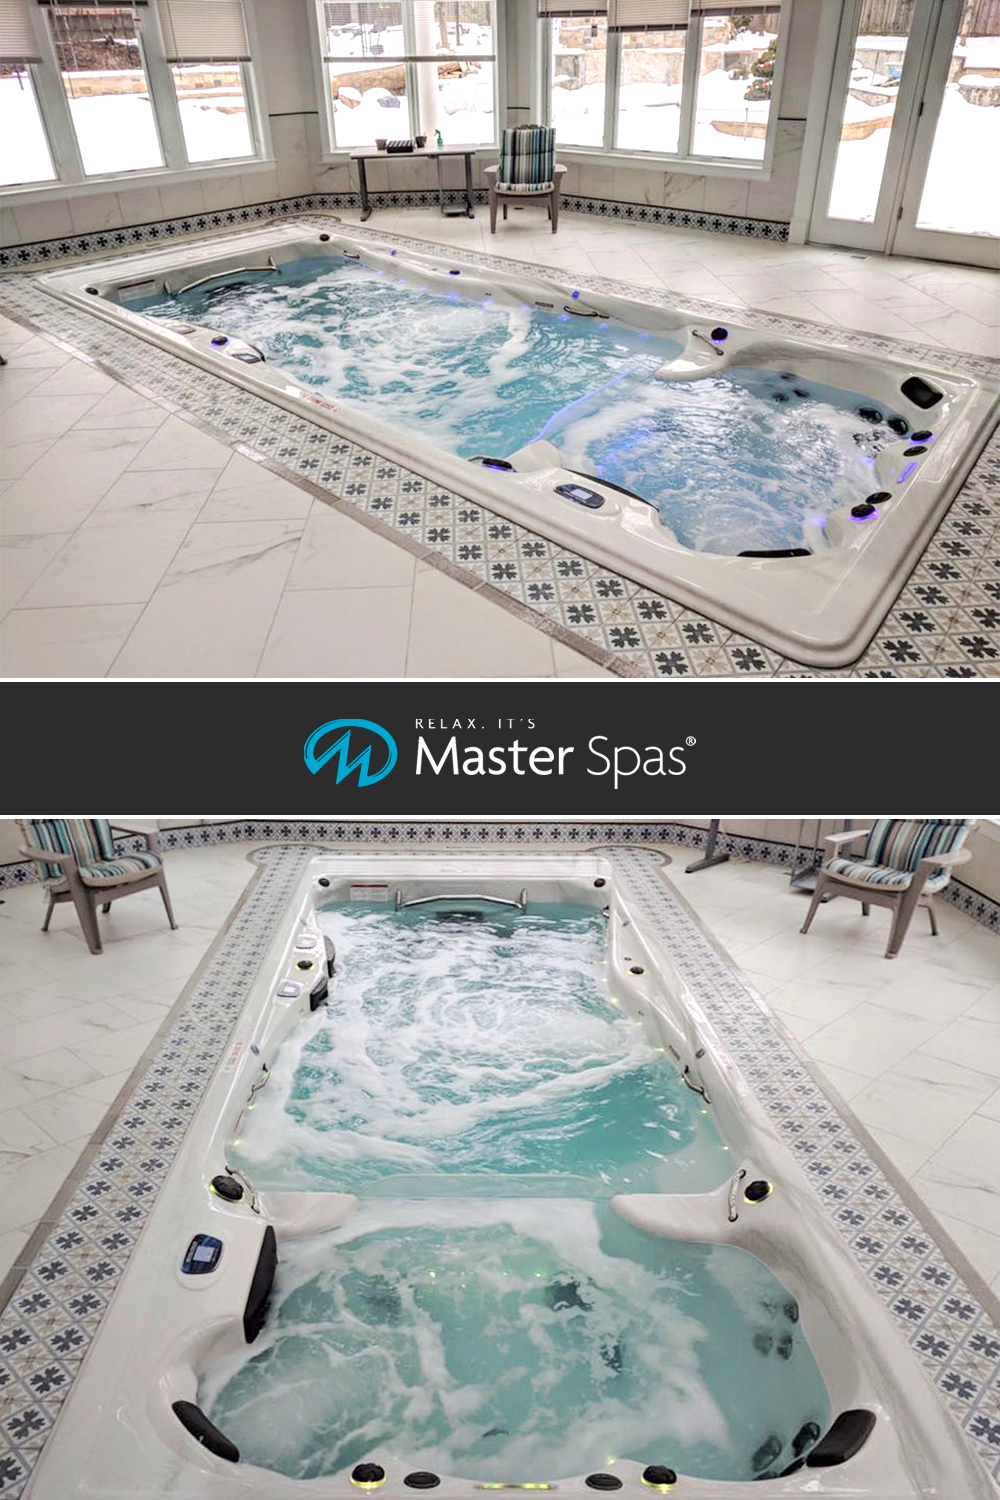 These Indoor Swim Spa Installations Will Make Your Jaw Drop Indoor Swim Spa Indoor Outdoor Pool Swim Spa